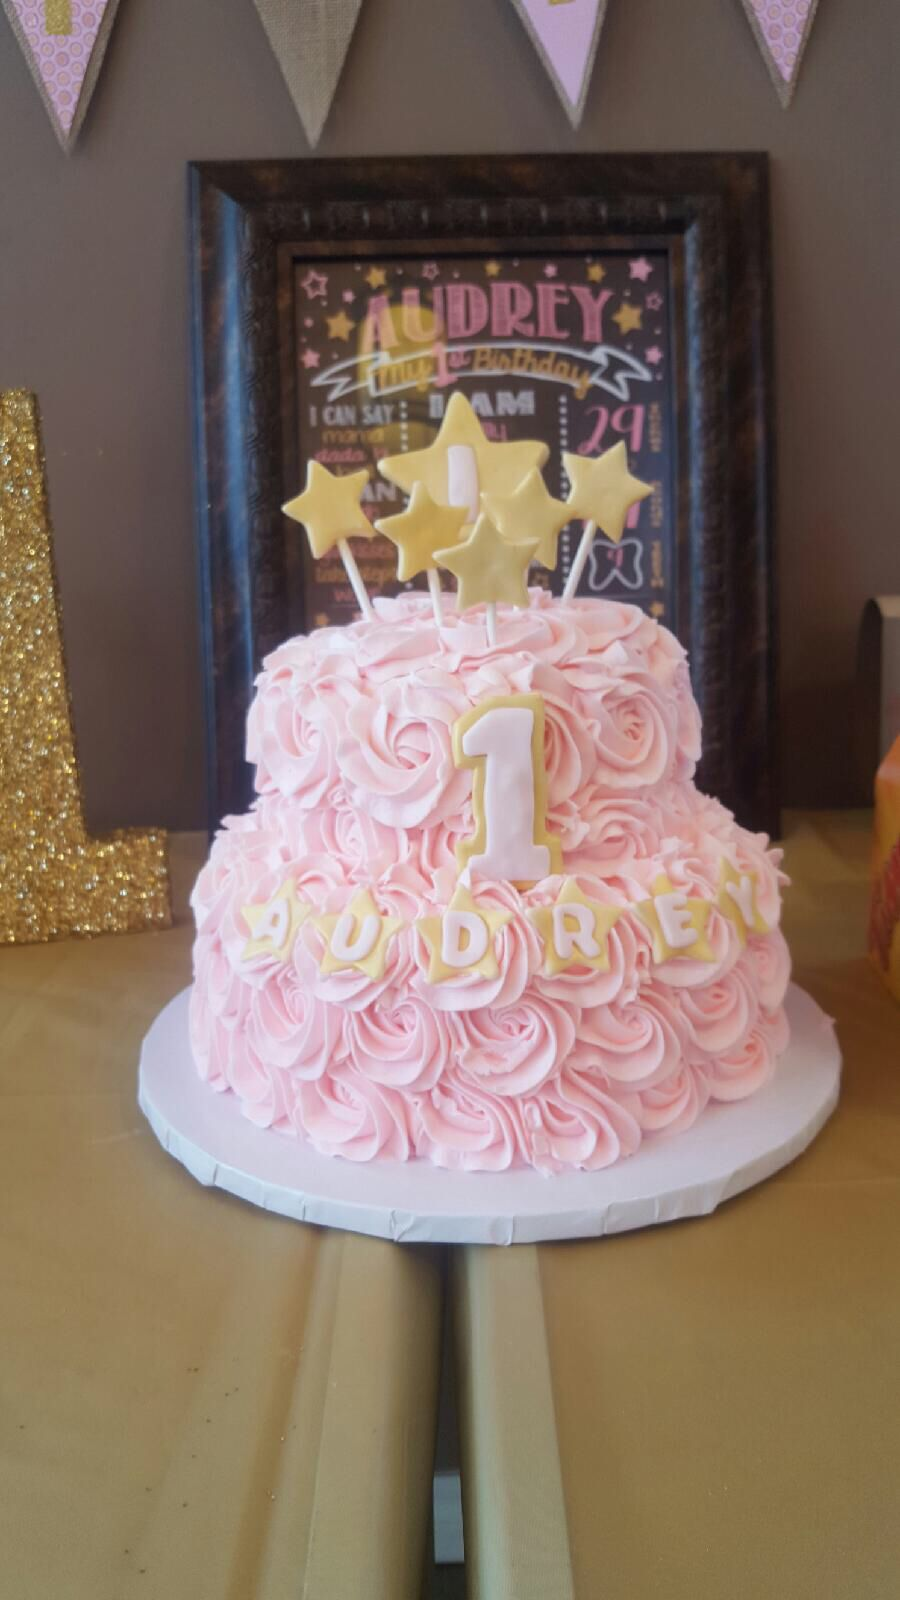 Twinkle Tinkle Little Star Cake For First Birthday Rainbow Chip